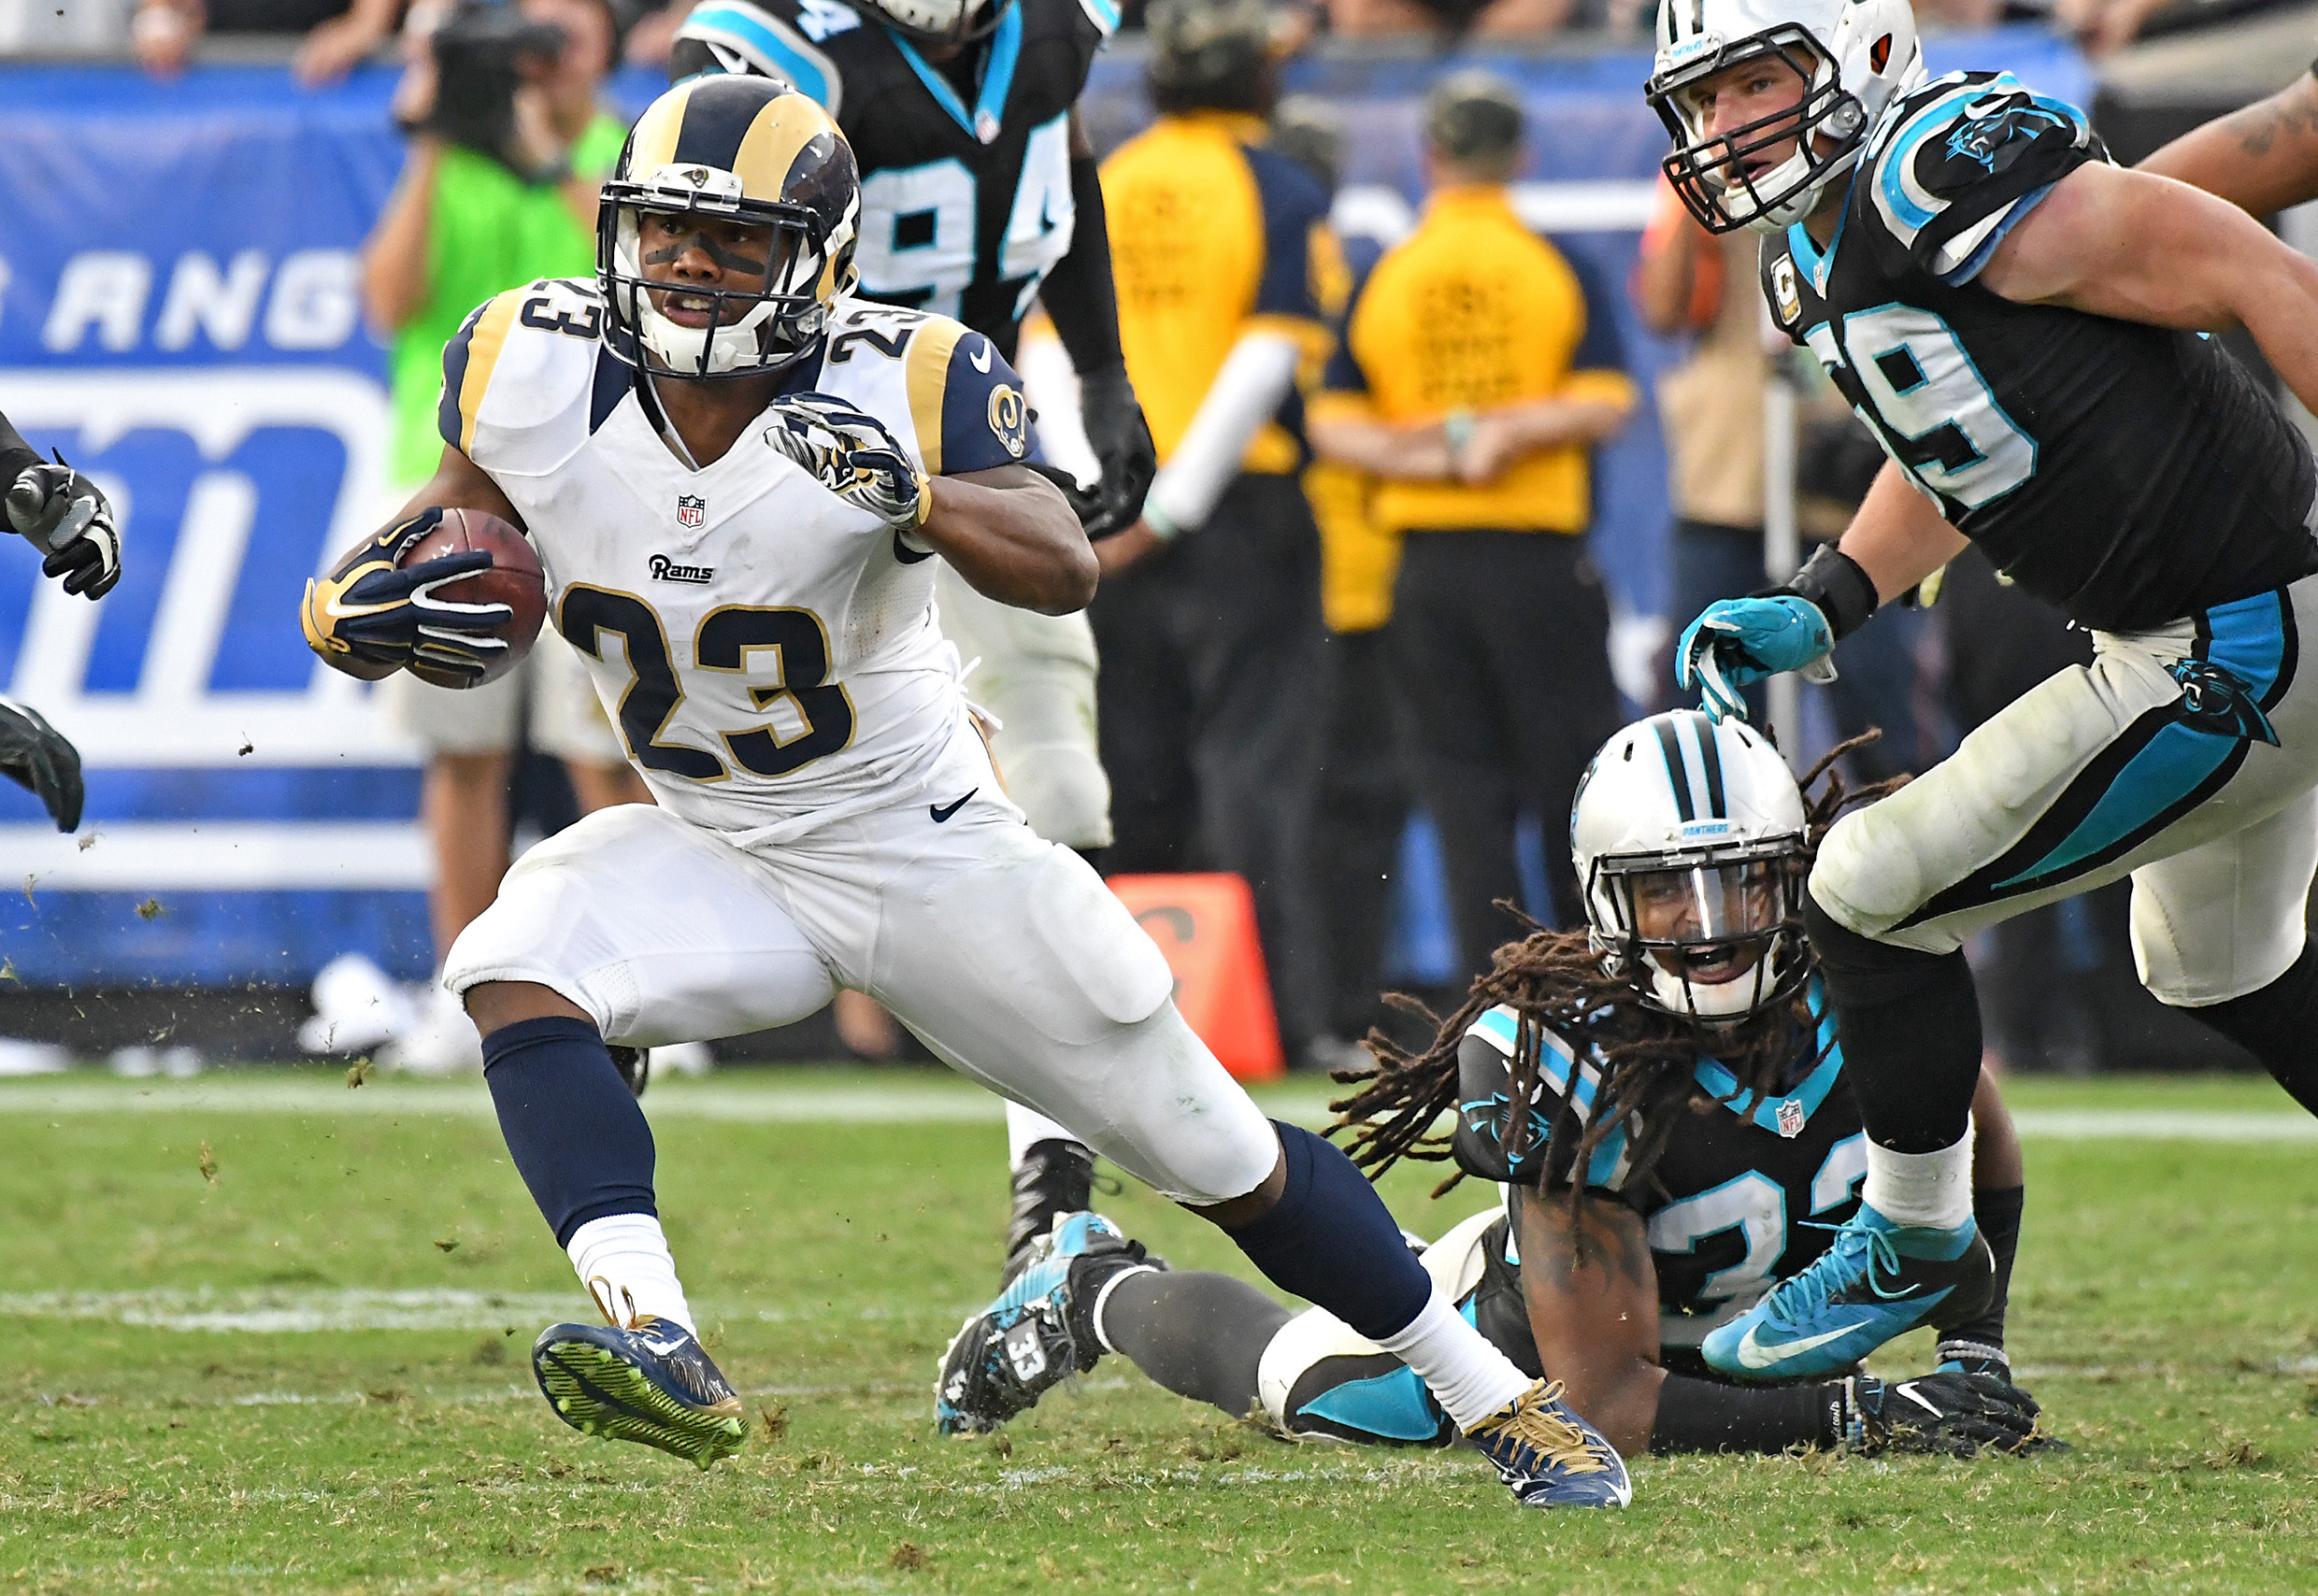 Los Angeles Rams RB Benny Cunningham